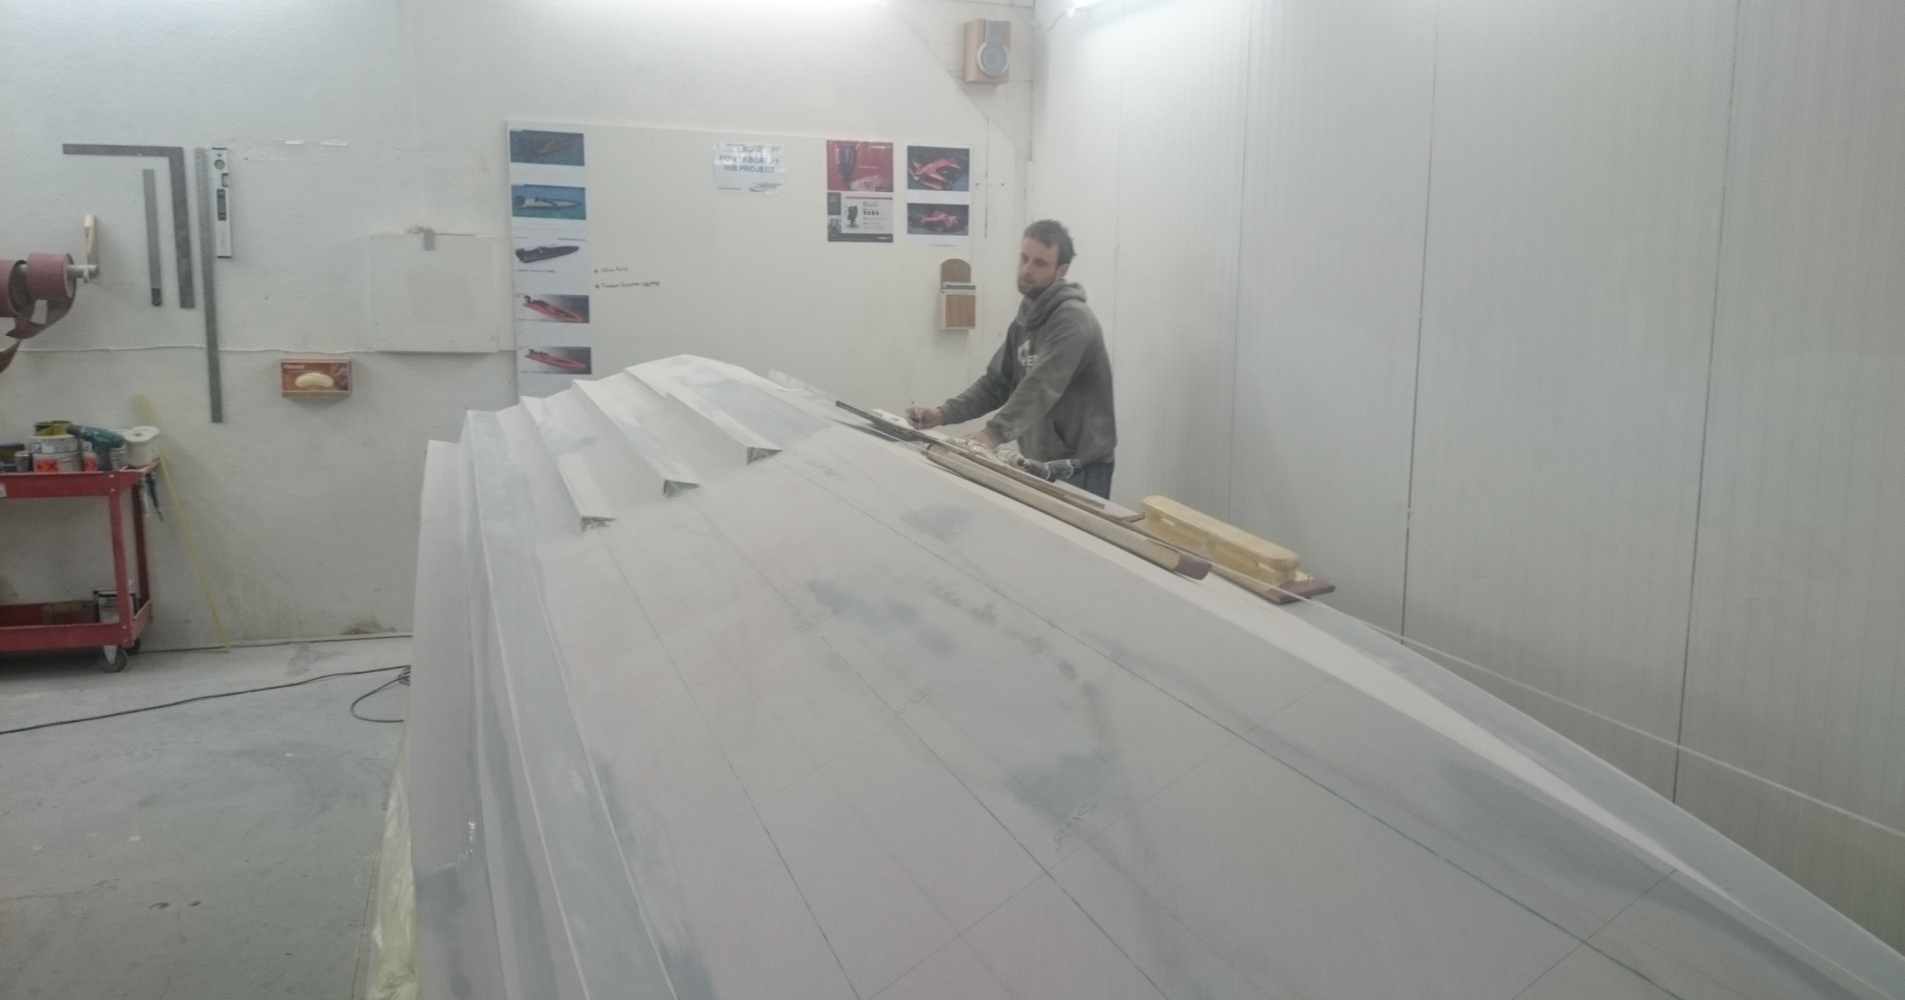 1. Preparing the hull for moulding